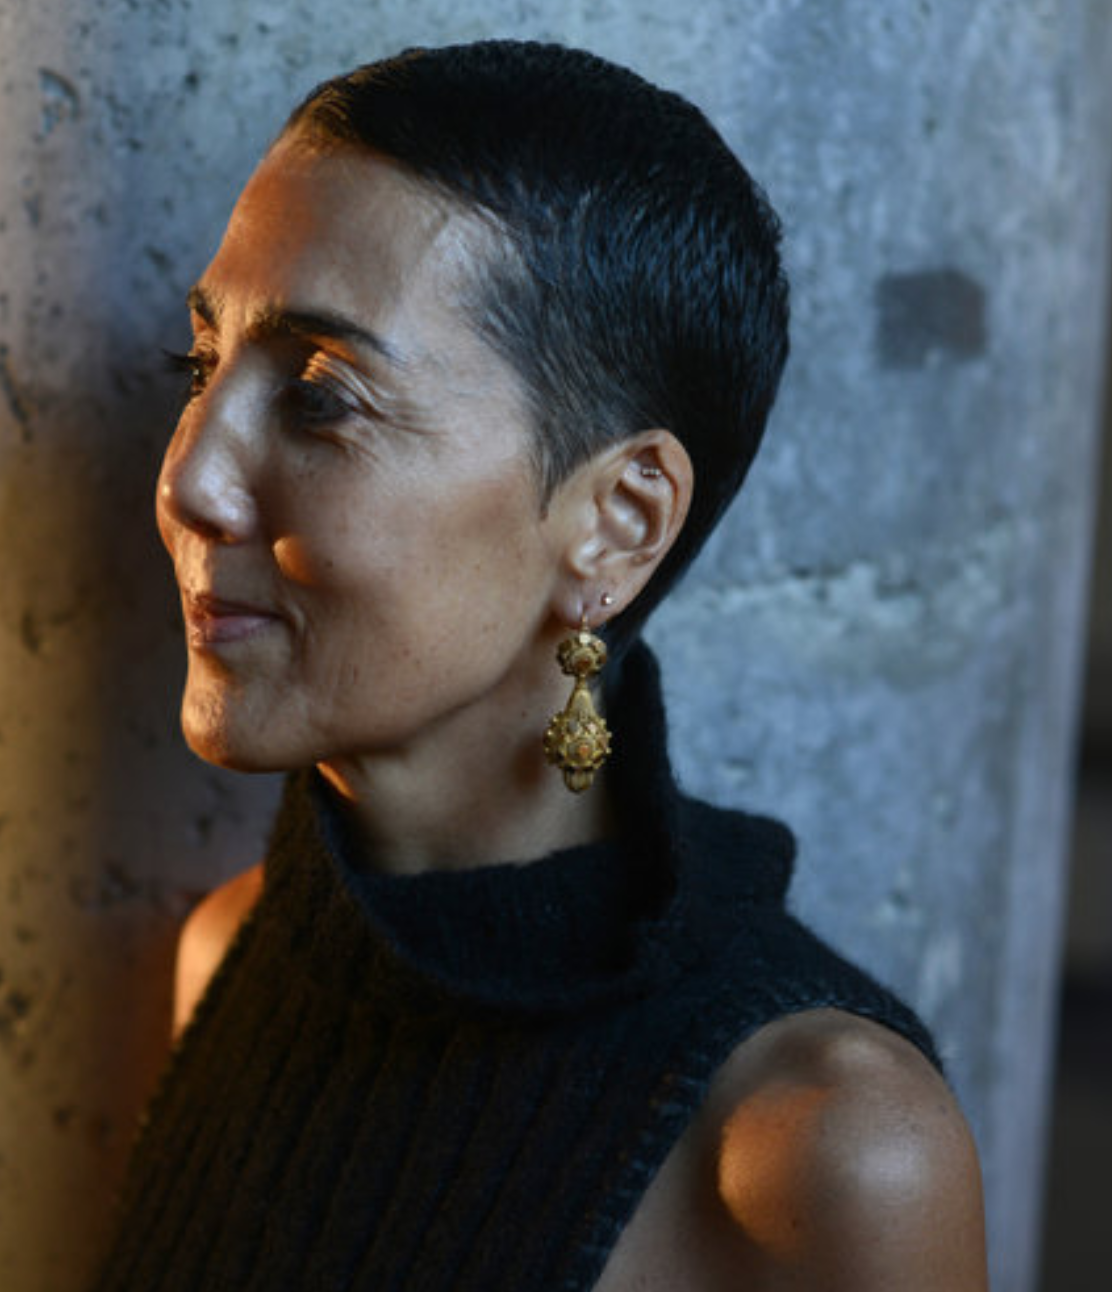 Elizabeth Yoshida - stylist from NYC. Shows how multipiercings look chic at 56. Contemporary jewellery style